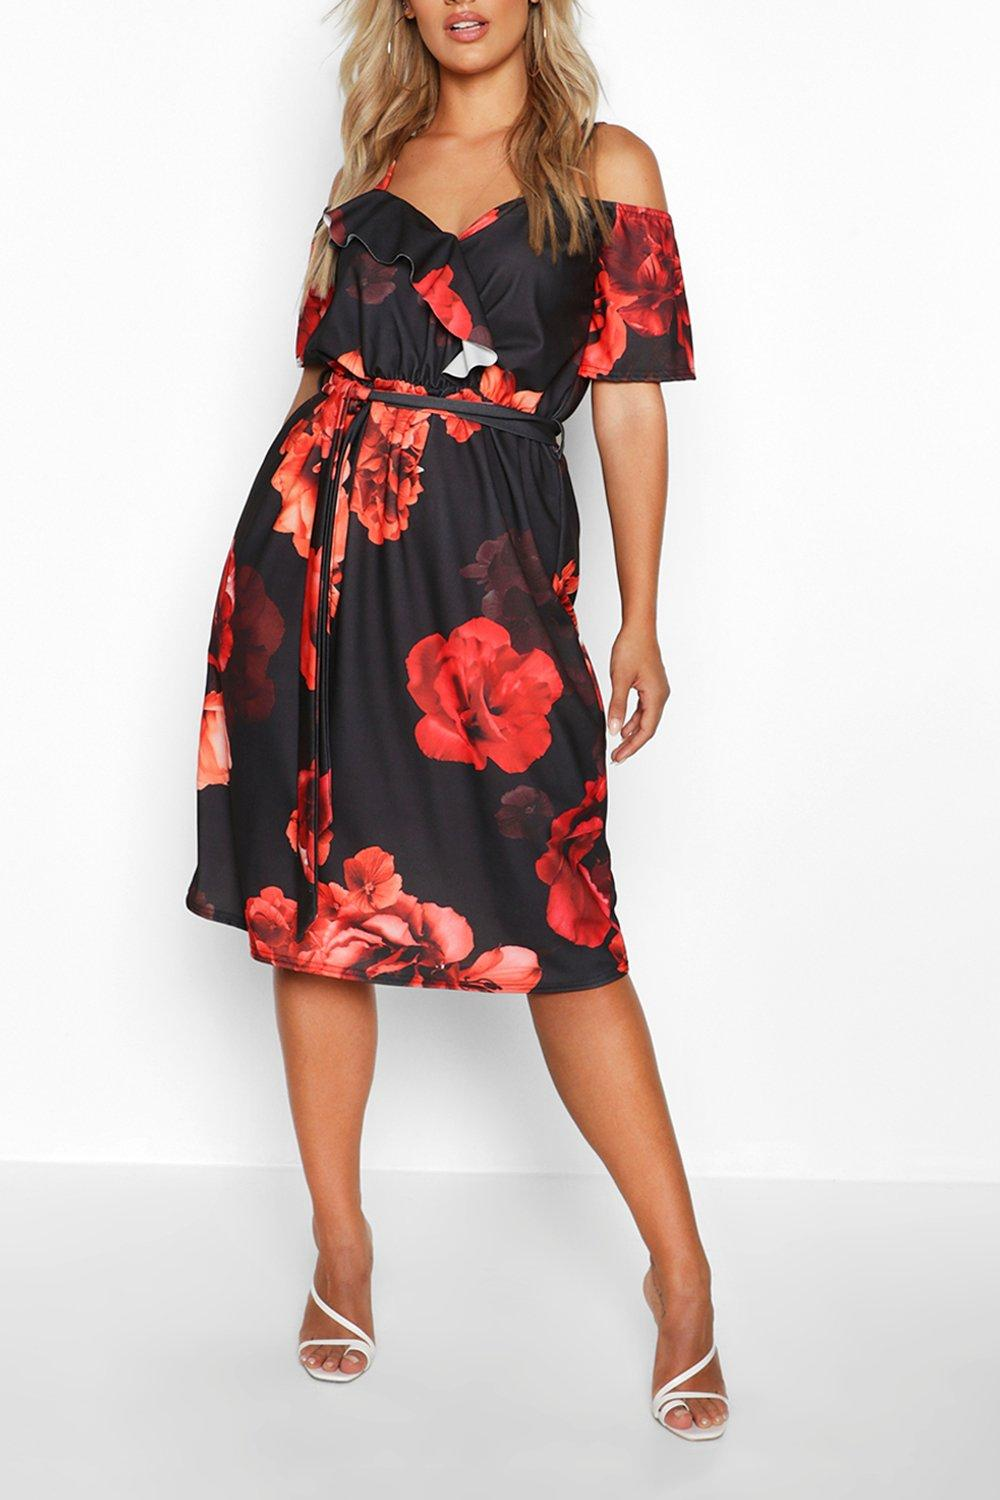 black and red floral print dress from boo hoo dot com